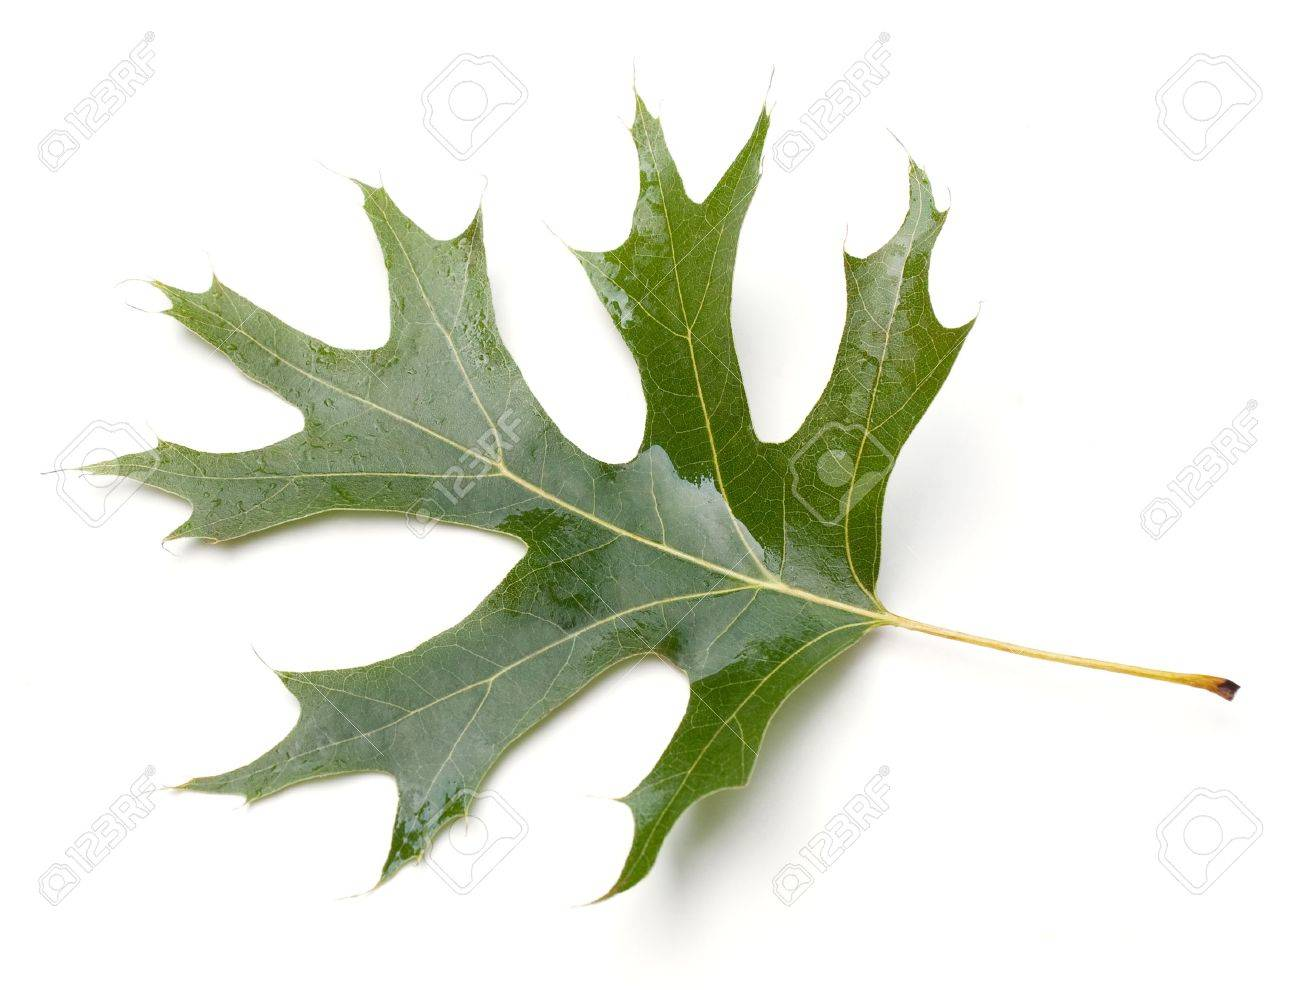 Quercus tree images & stock pictures. royalty free quercus tree